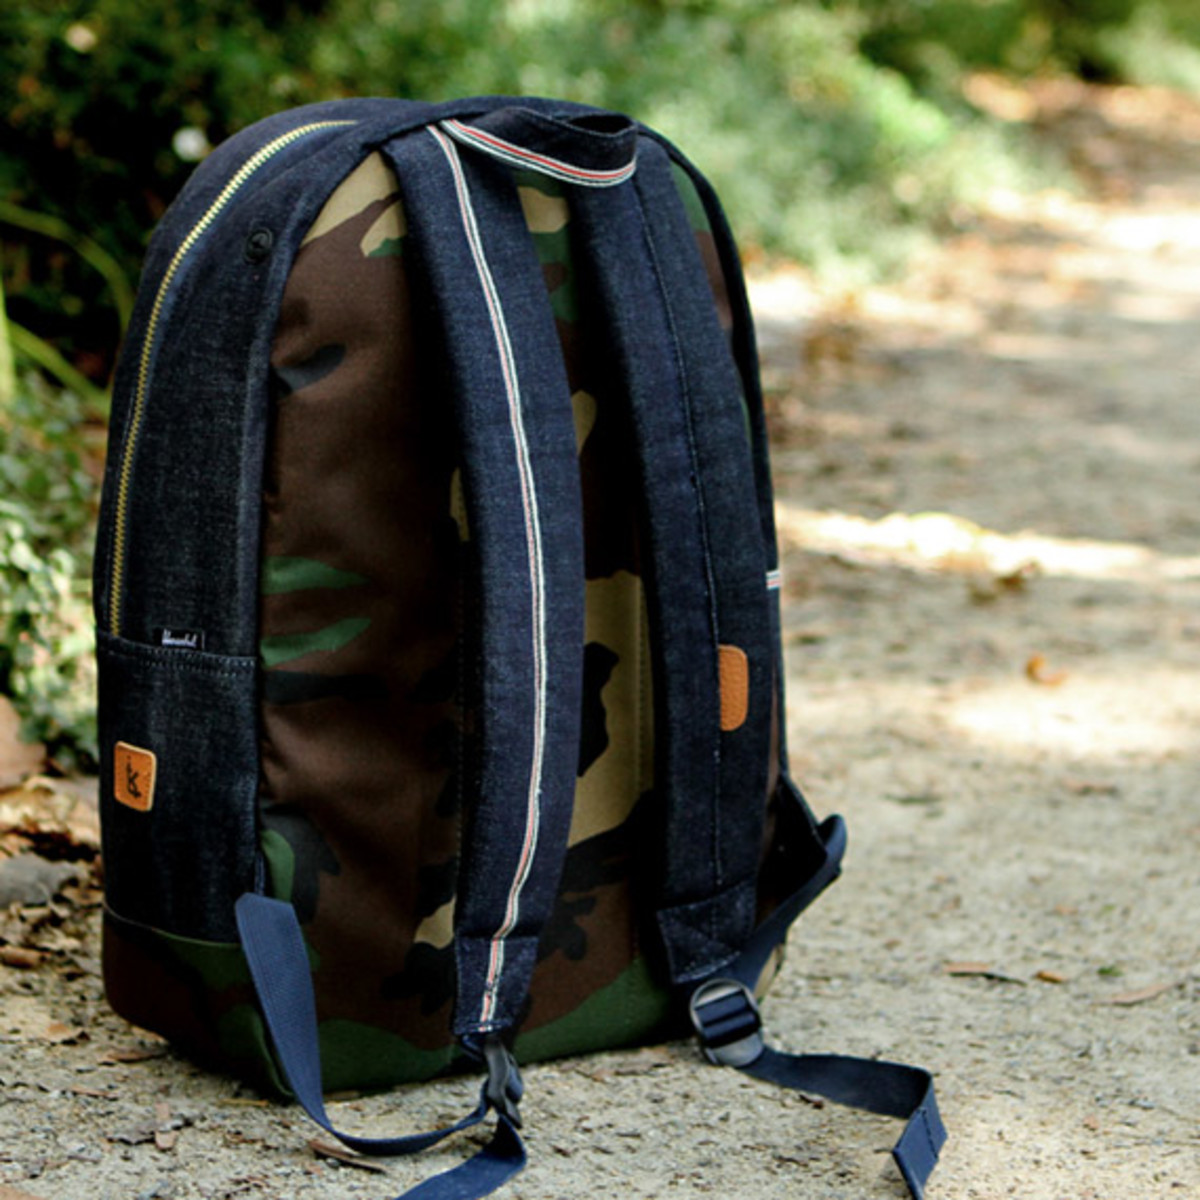 kith-ronnie-fieg-herschel-supply-co-denim-backpack-03